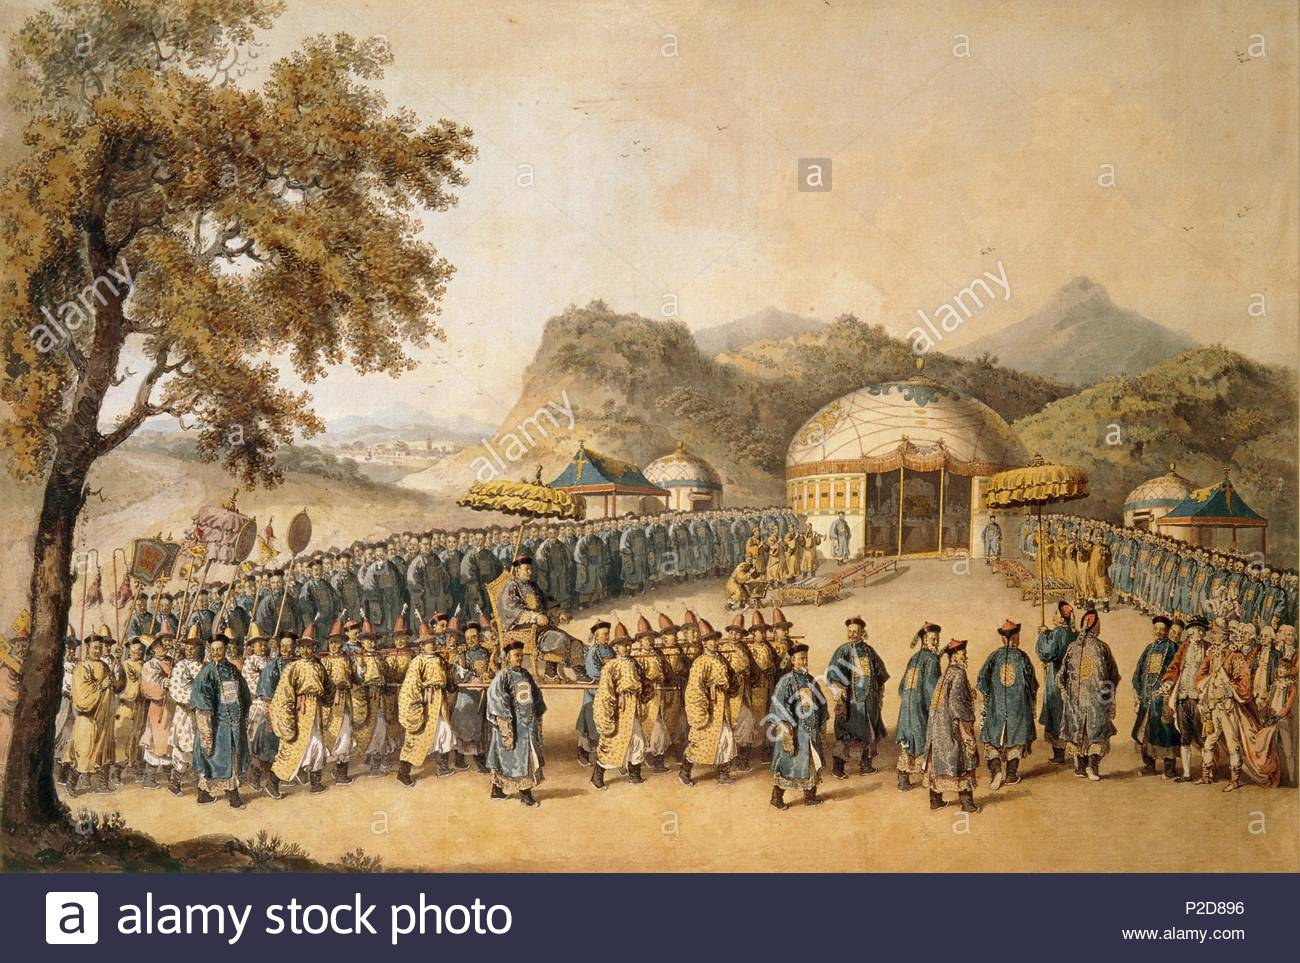 The approach of the Emperor of China (Tchien Lung, 1711-1799) to his tent in Tartary to receive the British ambassador George, 1st Earl Macartney (1737-1806), 1793.      William Alexander (1767-1816) accompanied Lord Macartney's embassy to visit the Chinese Emperor in Beijing from 1792 to 1794. From numerous sketches he made during his stay, he painted this watercolour scene and many others when he returned to England and had engravings made and published of some of his views. Author: ALEXANDER, WILLIAM. Location: British Museum, London, Great Britain. - Stock Image